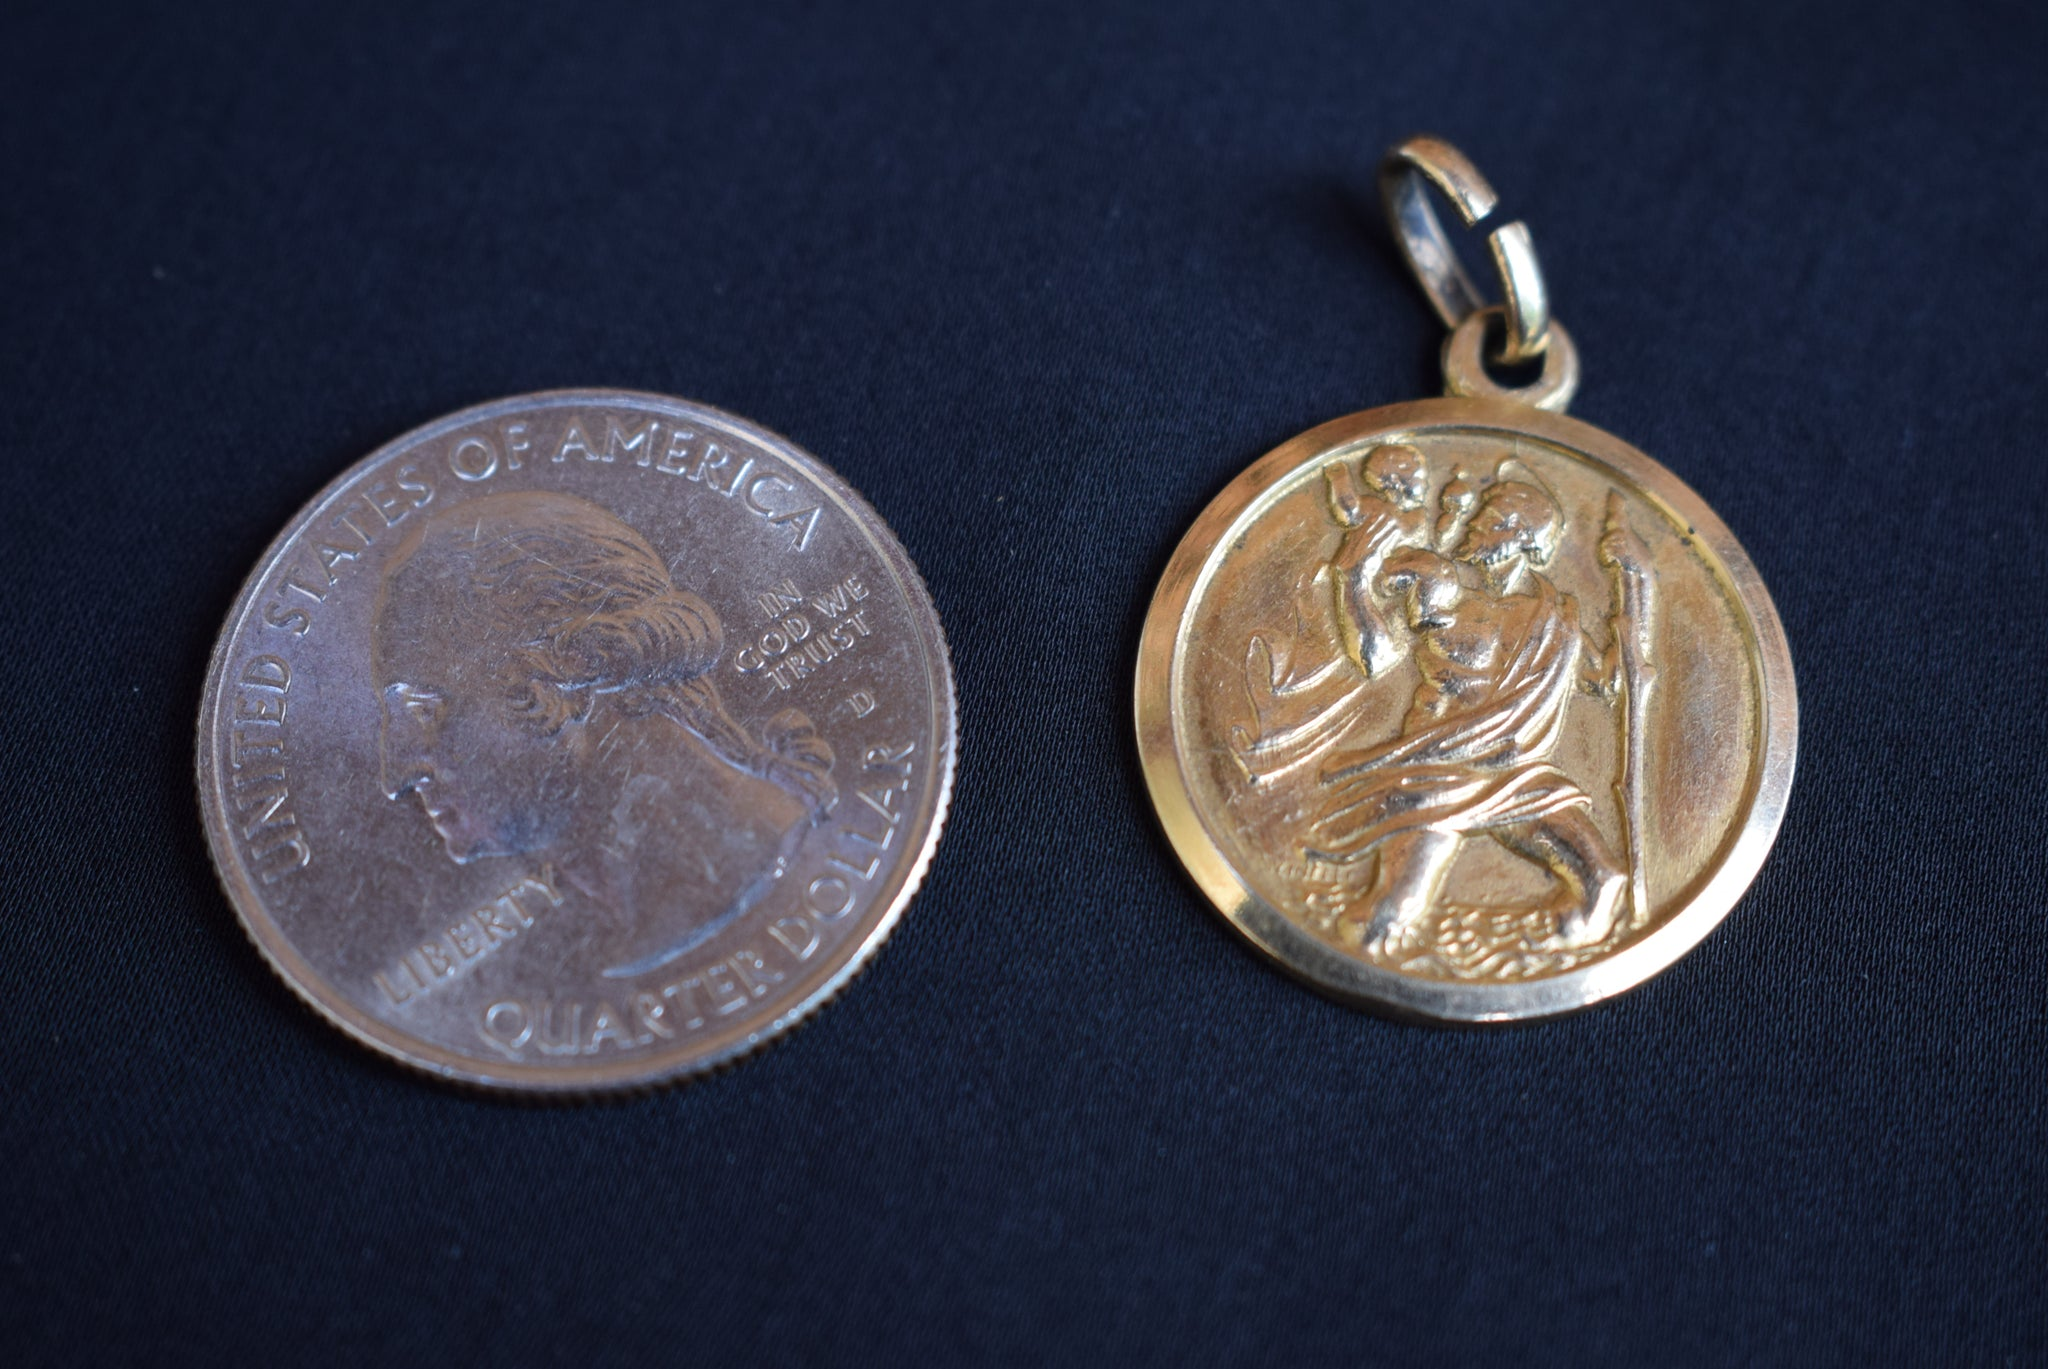 Italian Christopher Medal - Charmantiques